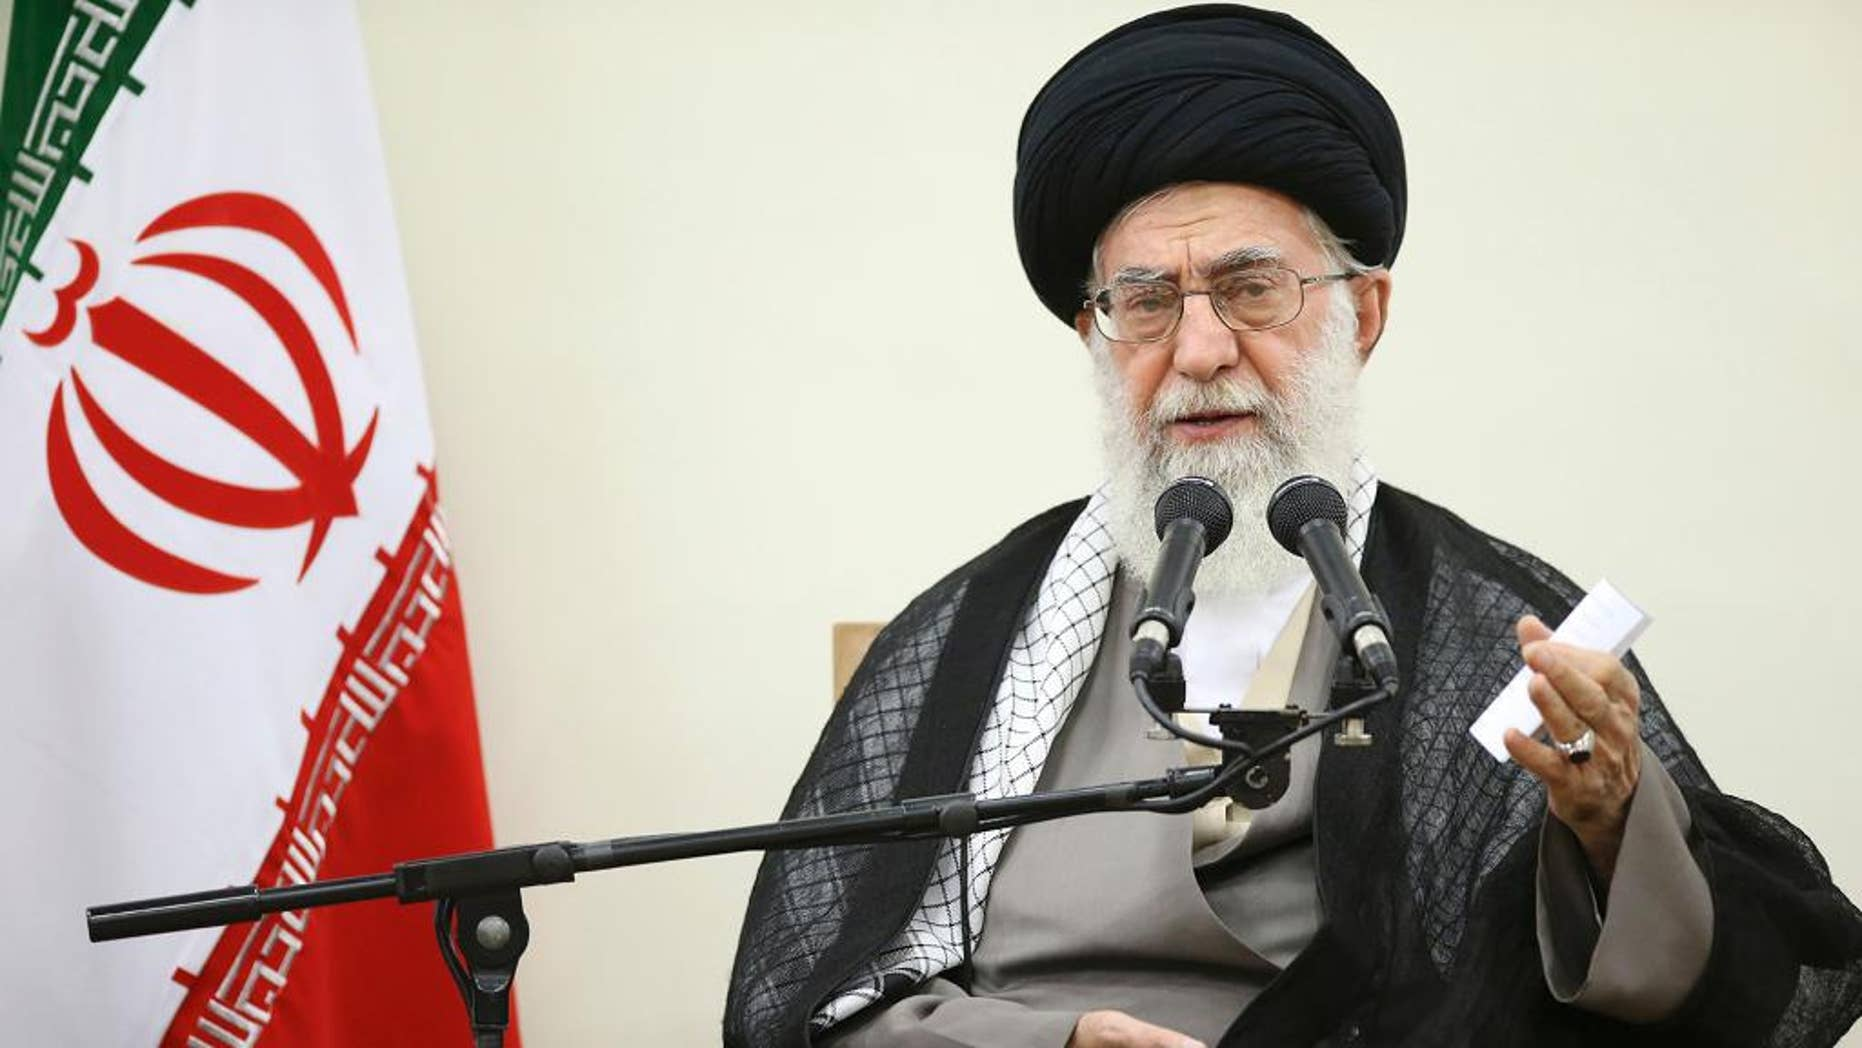 """In this picture released by the official website of the office of the Iranian supreme leader, Supreme Leader Ayatollah Ali Khamenei delivers a speech during a meeting in Tehran, Wednesday, Sept. 9, 2015.  Khamenei said Wednesday that his country will not enter into talks with the United States outside of the nuclear deal with world powers as Washington could use other negotiations to """"penetrate"""" the Islamic Republic. Khamenei's comments, published on his website, came as enough U.S. lawmakers now support the nuclear deal to block passage of a resolution of disapproval. (Office of the Iranian Supreme Leader via AP)"""